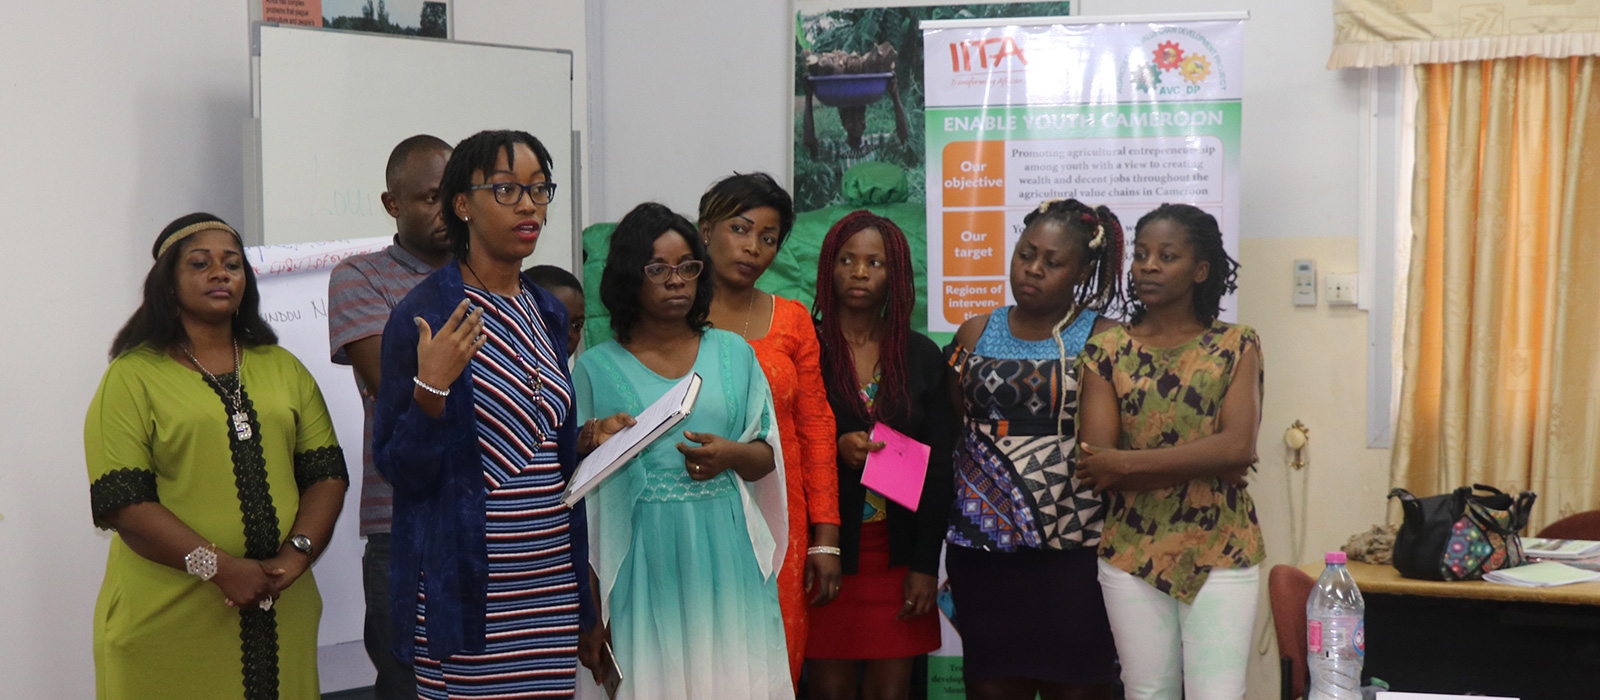 EQUAL OPPORTUNITIES AND ADEQUATE SKILLS TO YOUNG WOMEN